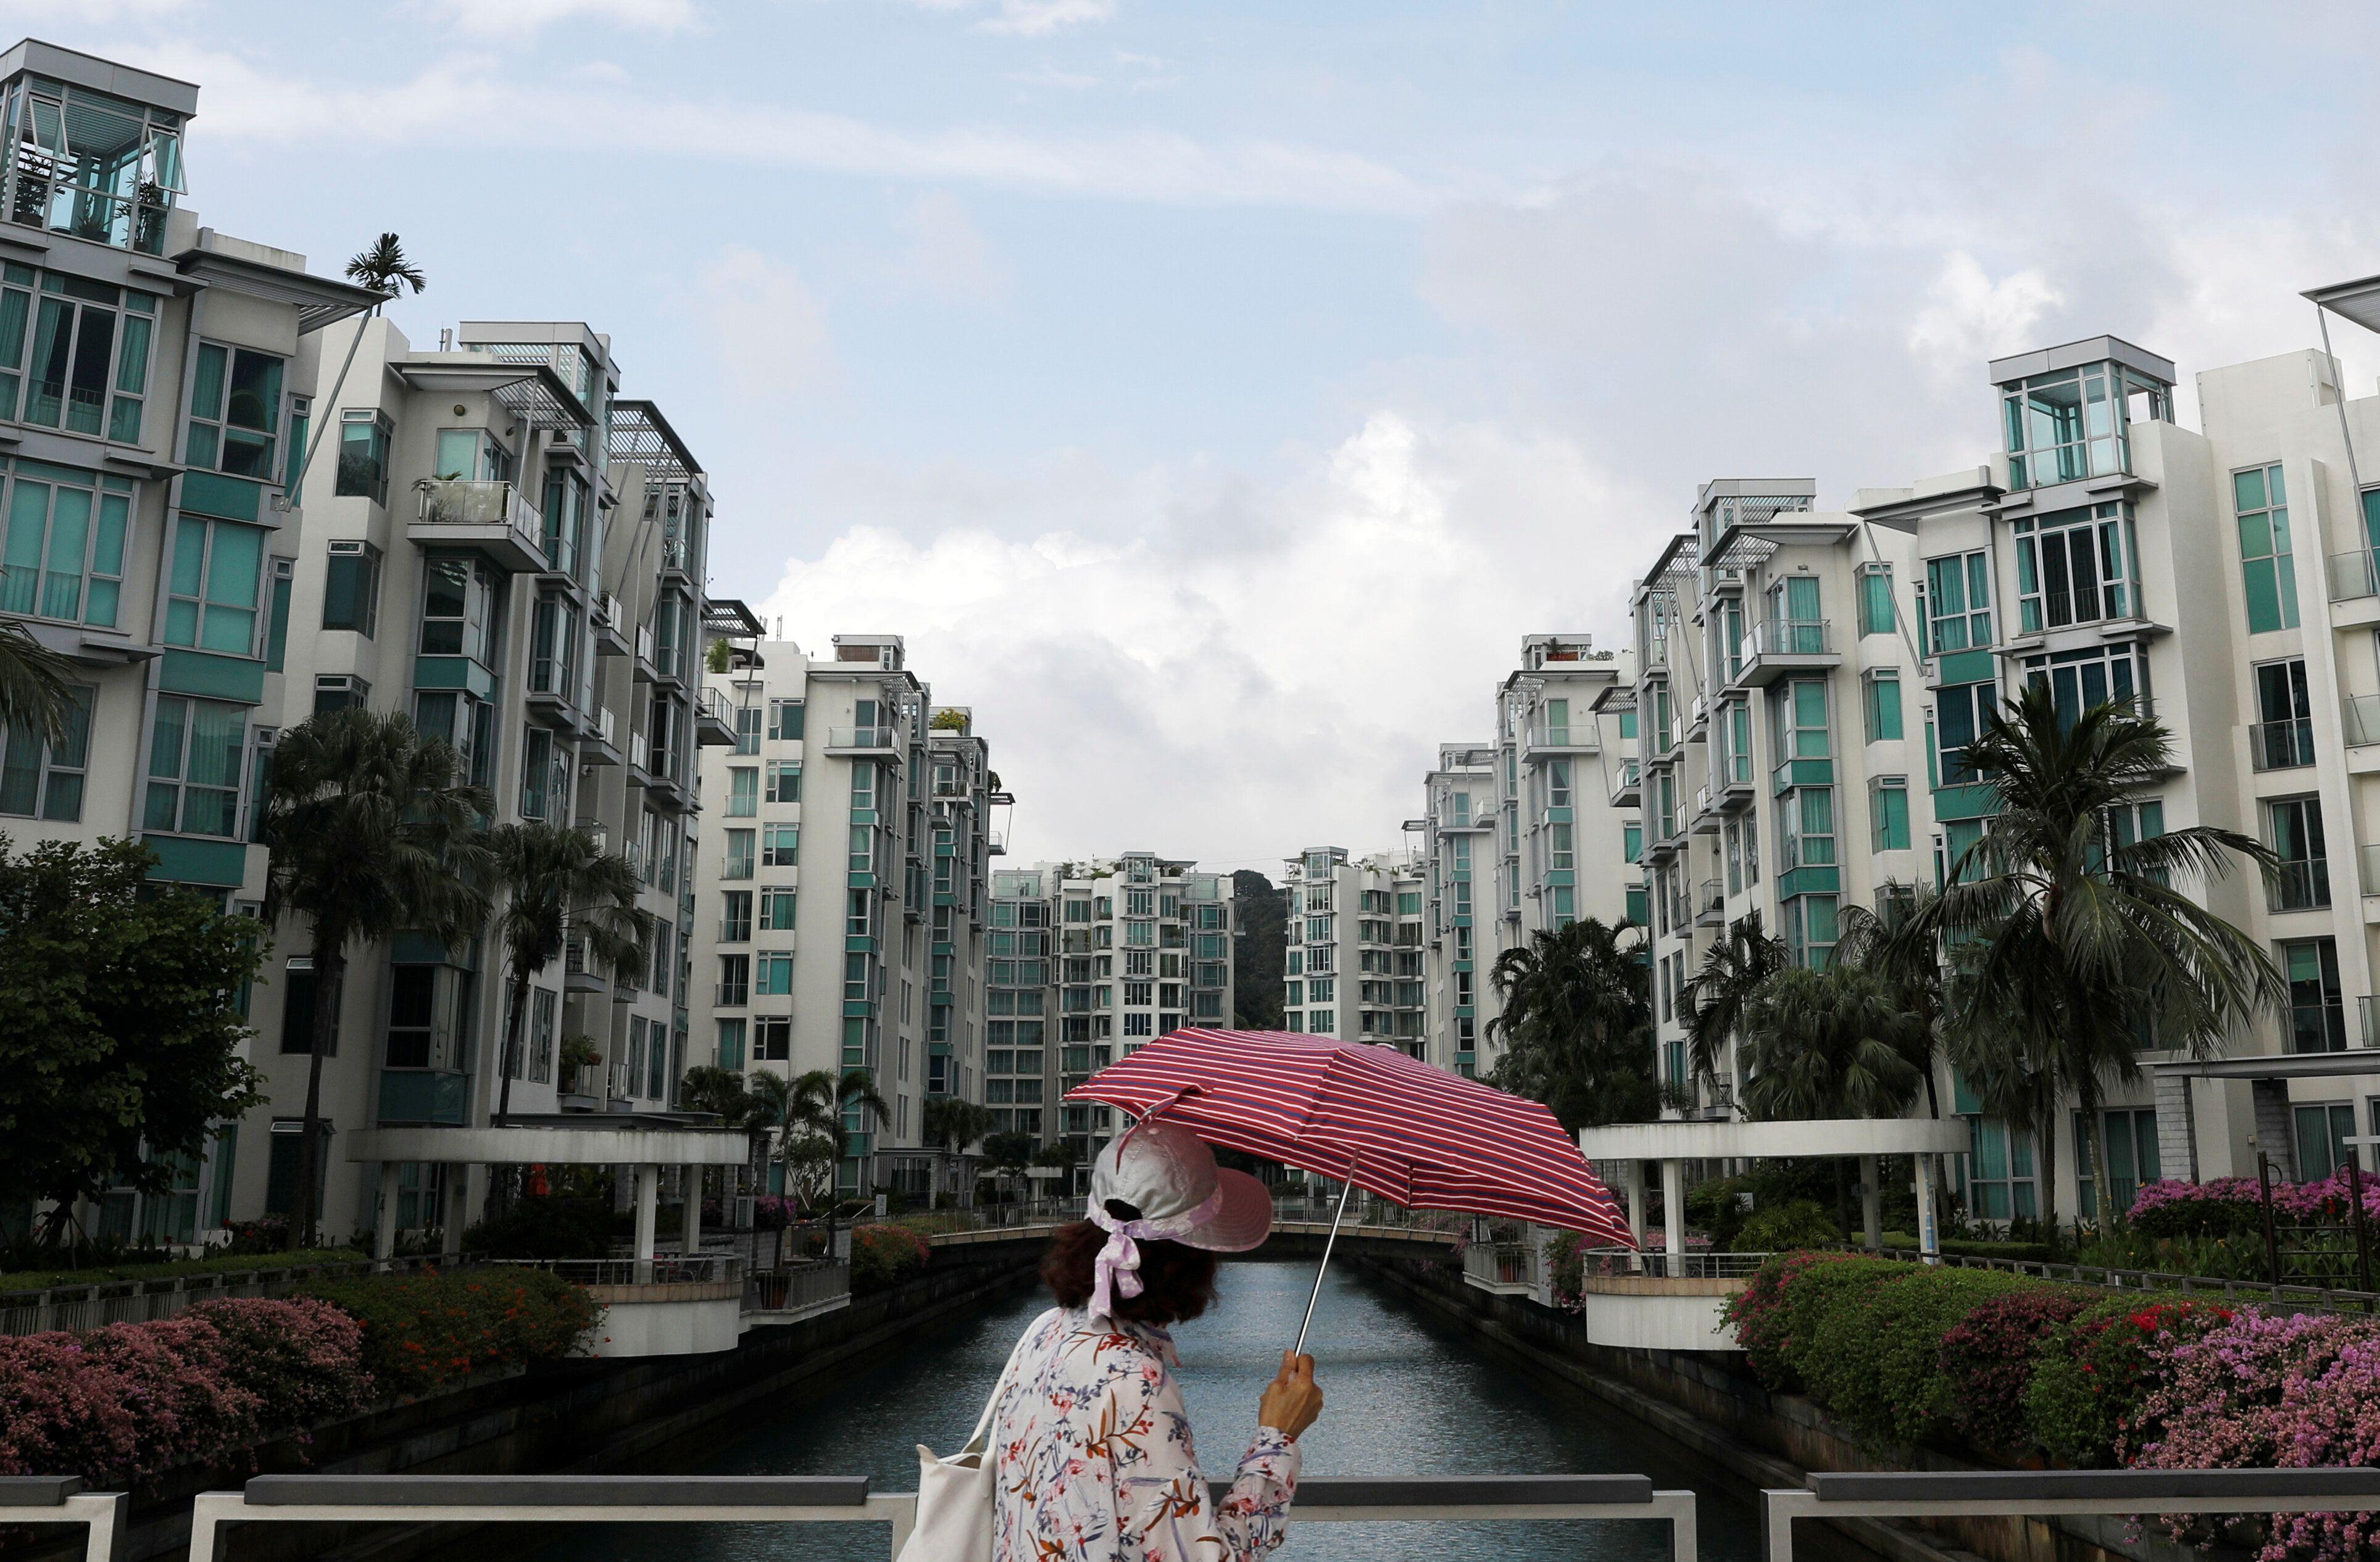 Singaporeans are buying most homes versus foreigners in a decade